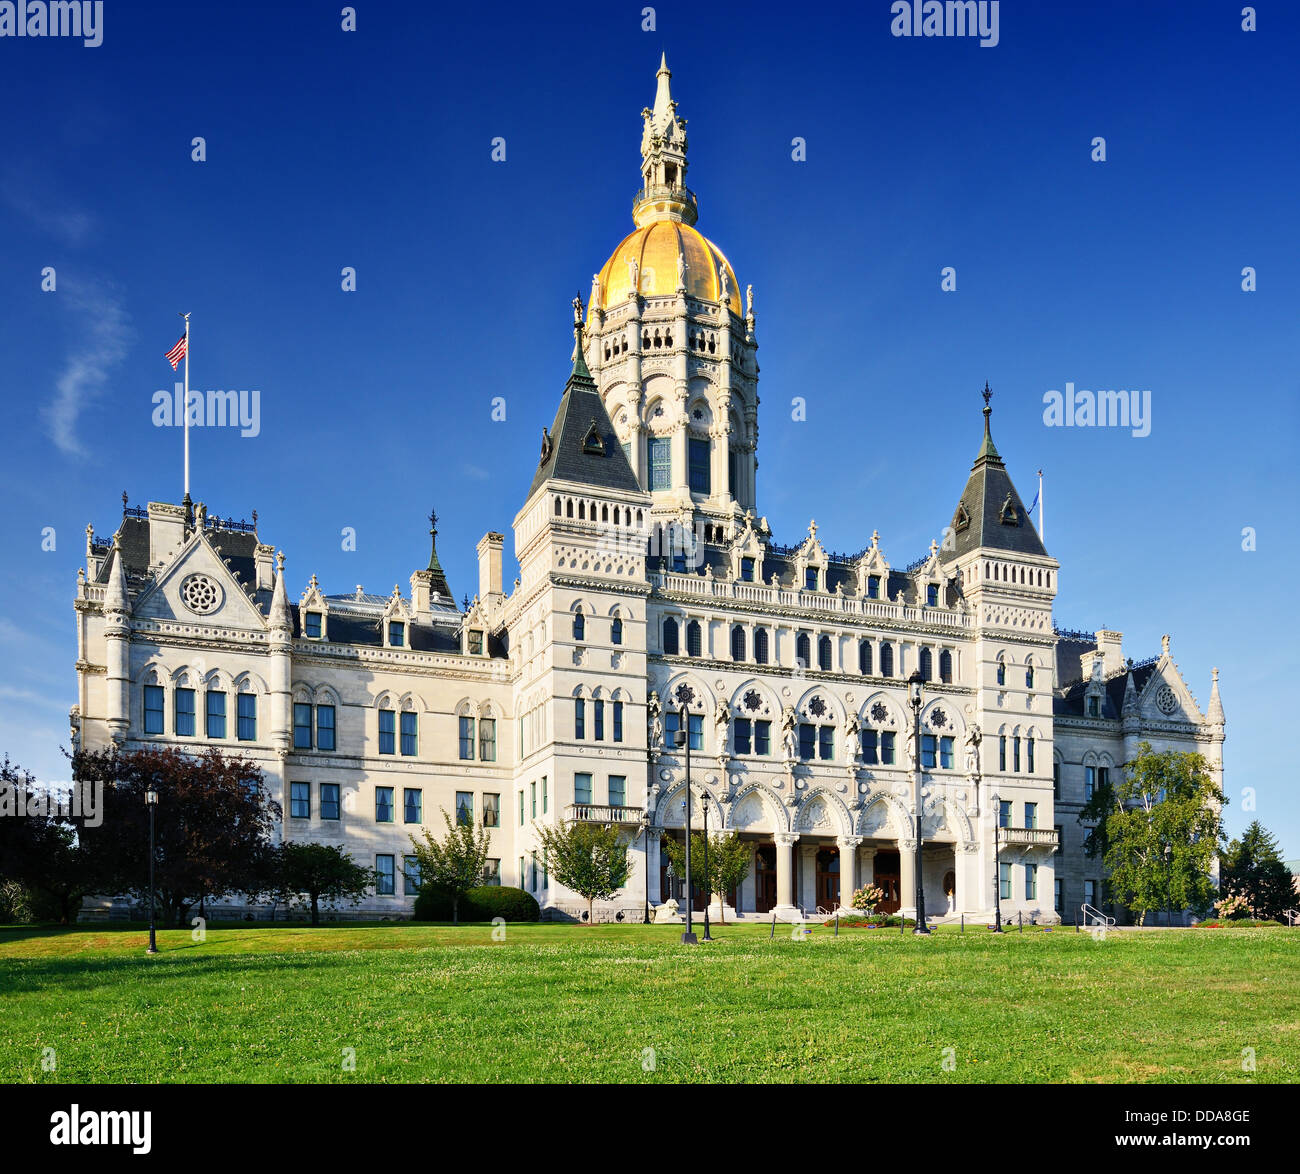 Connecticut State Capitol in Hartford, Connecticut. Stock Photo